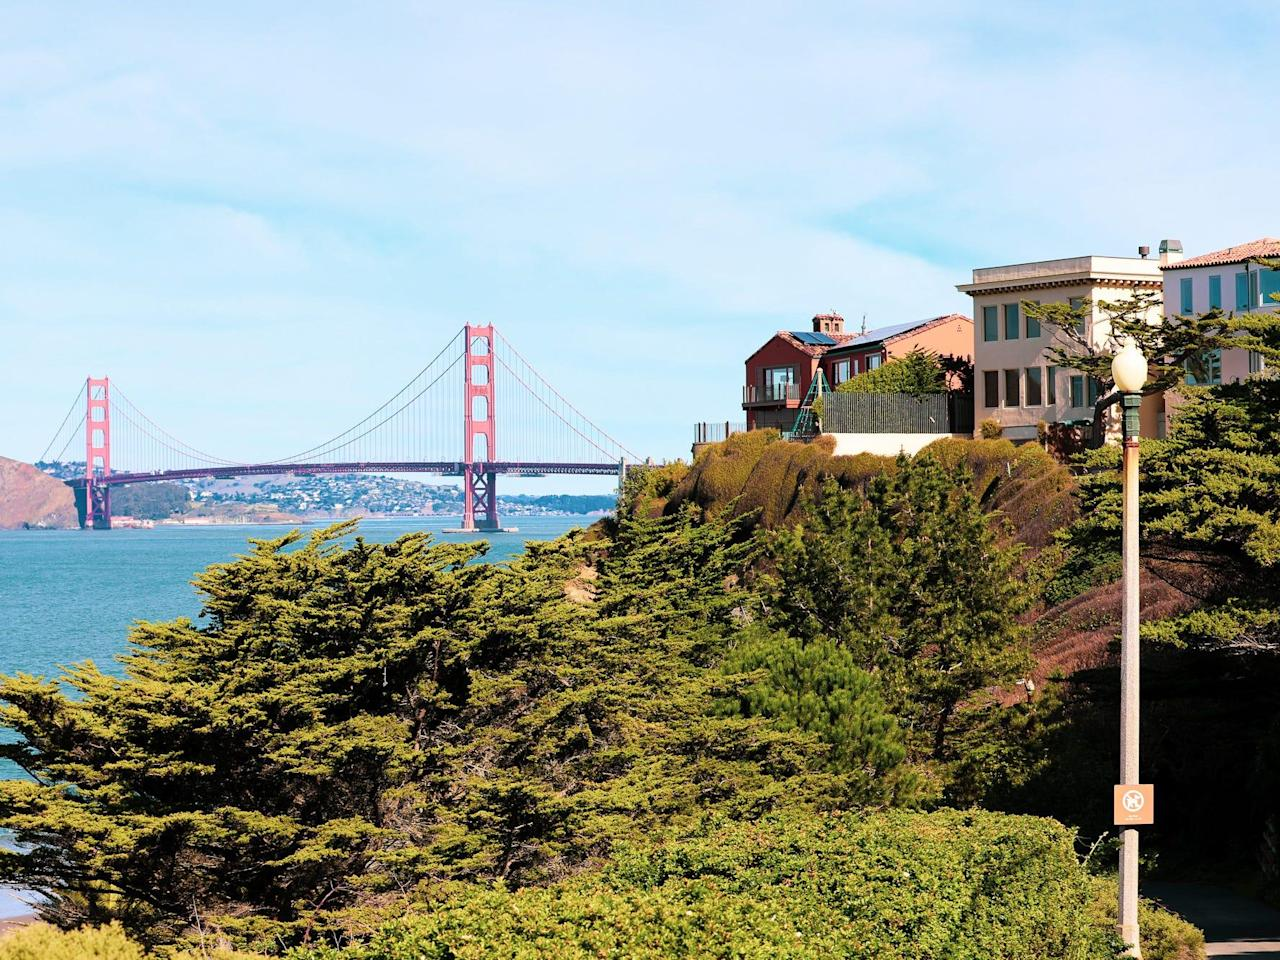 San Francisco's Sea Cliff neighborhood, where Twitter CEO Jack Dorsey owns $30 million worth of homes, is a parade of oceanside mansions. Here's what it's like inside.